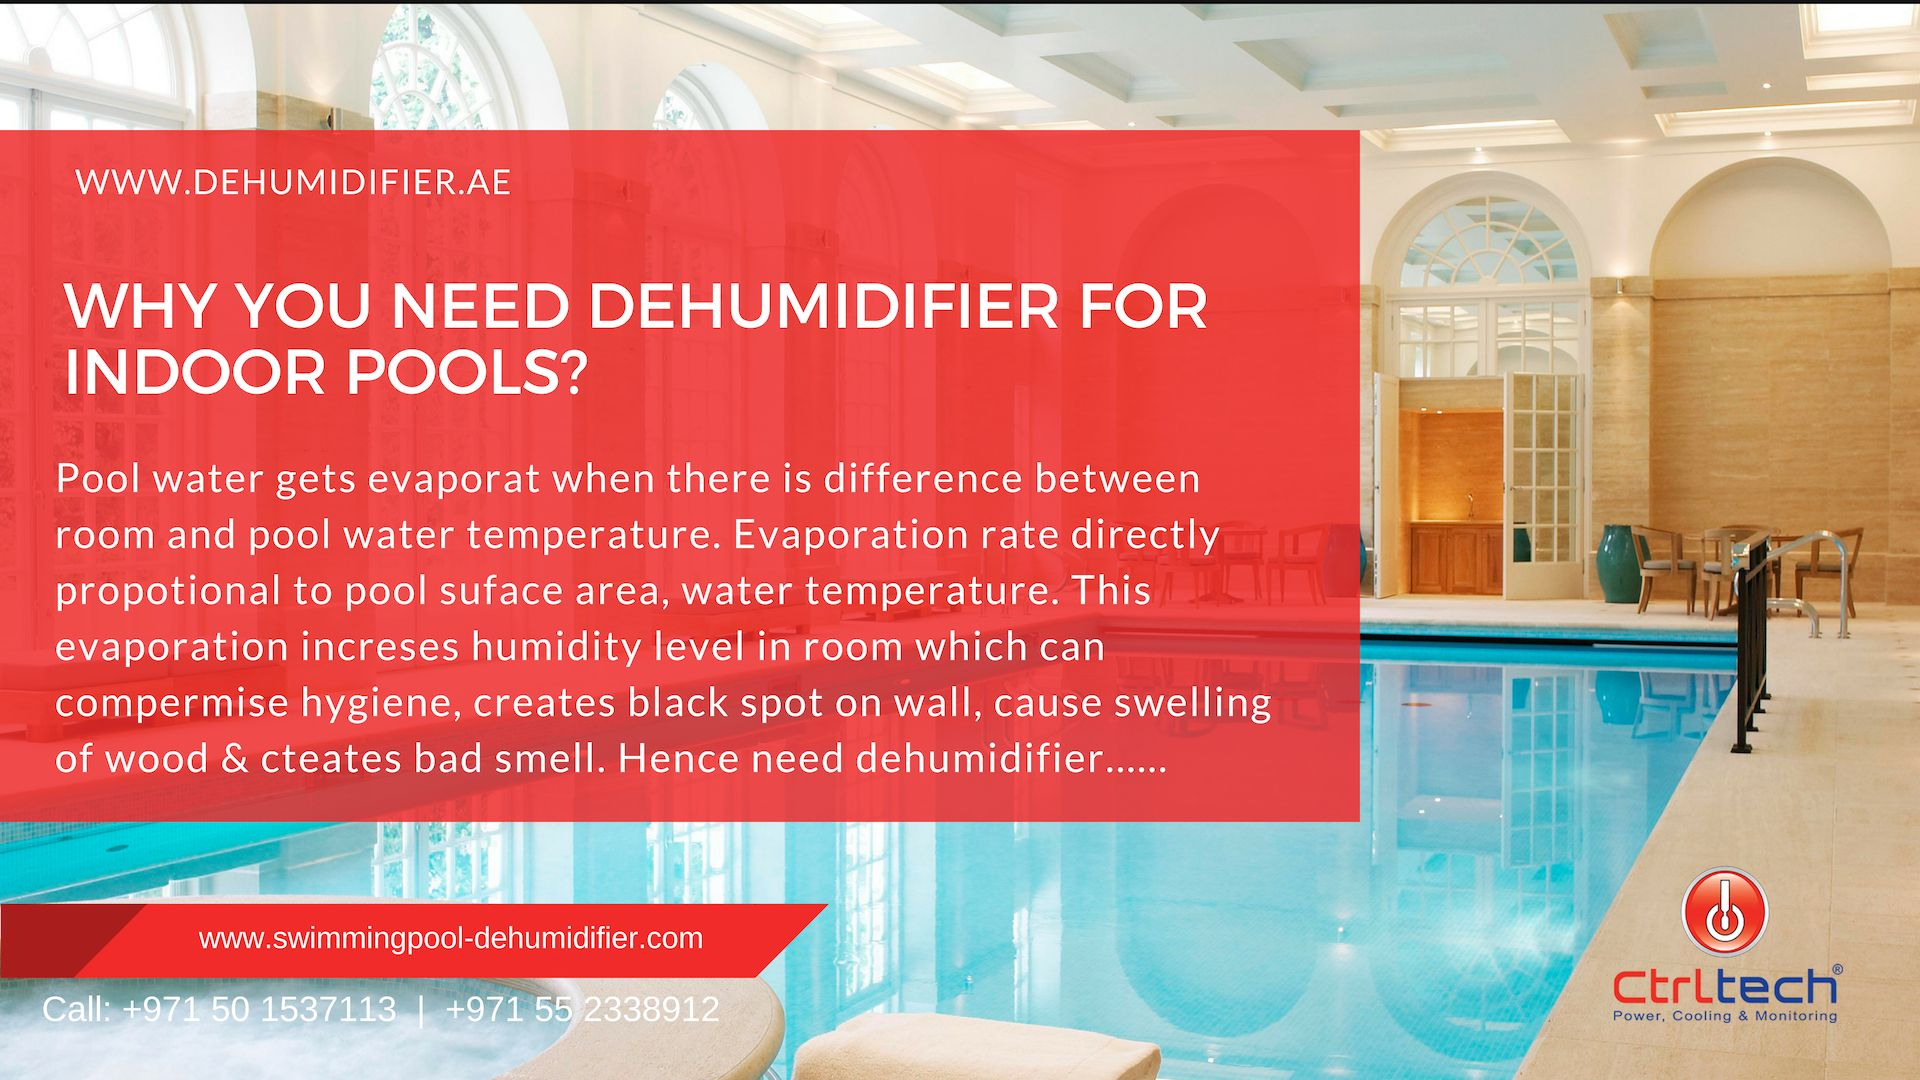 First Of All Lets Understand Why We Need Dehumidifier For Indoor Pool Rooms Dehumidifier Indoorpoolde Indoor Swimming Pools Swimming Pool Water Indoor Pool